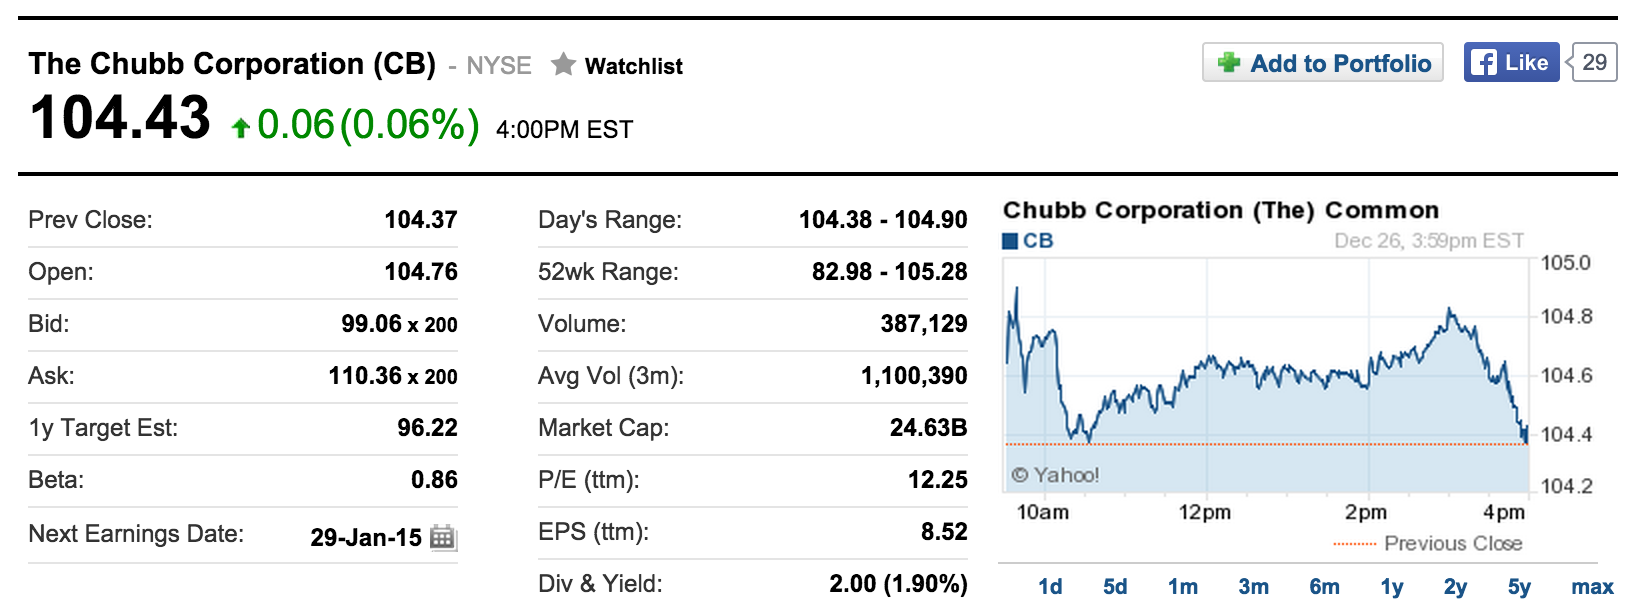 The Chubb Corporation (CB) Stock Quote